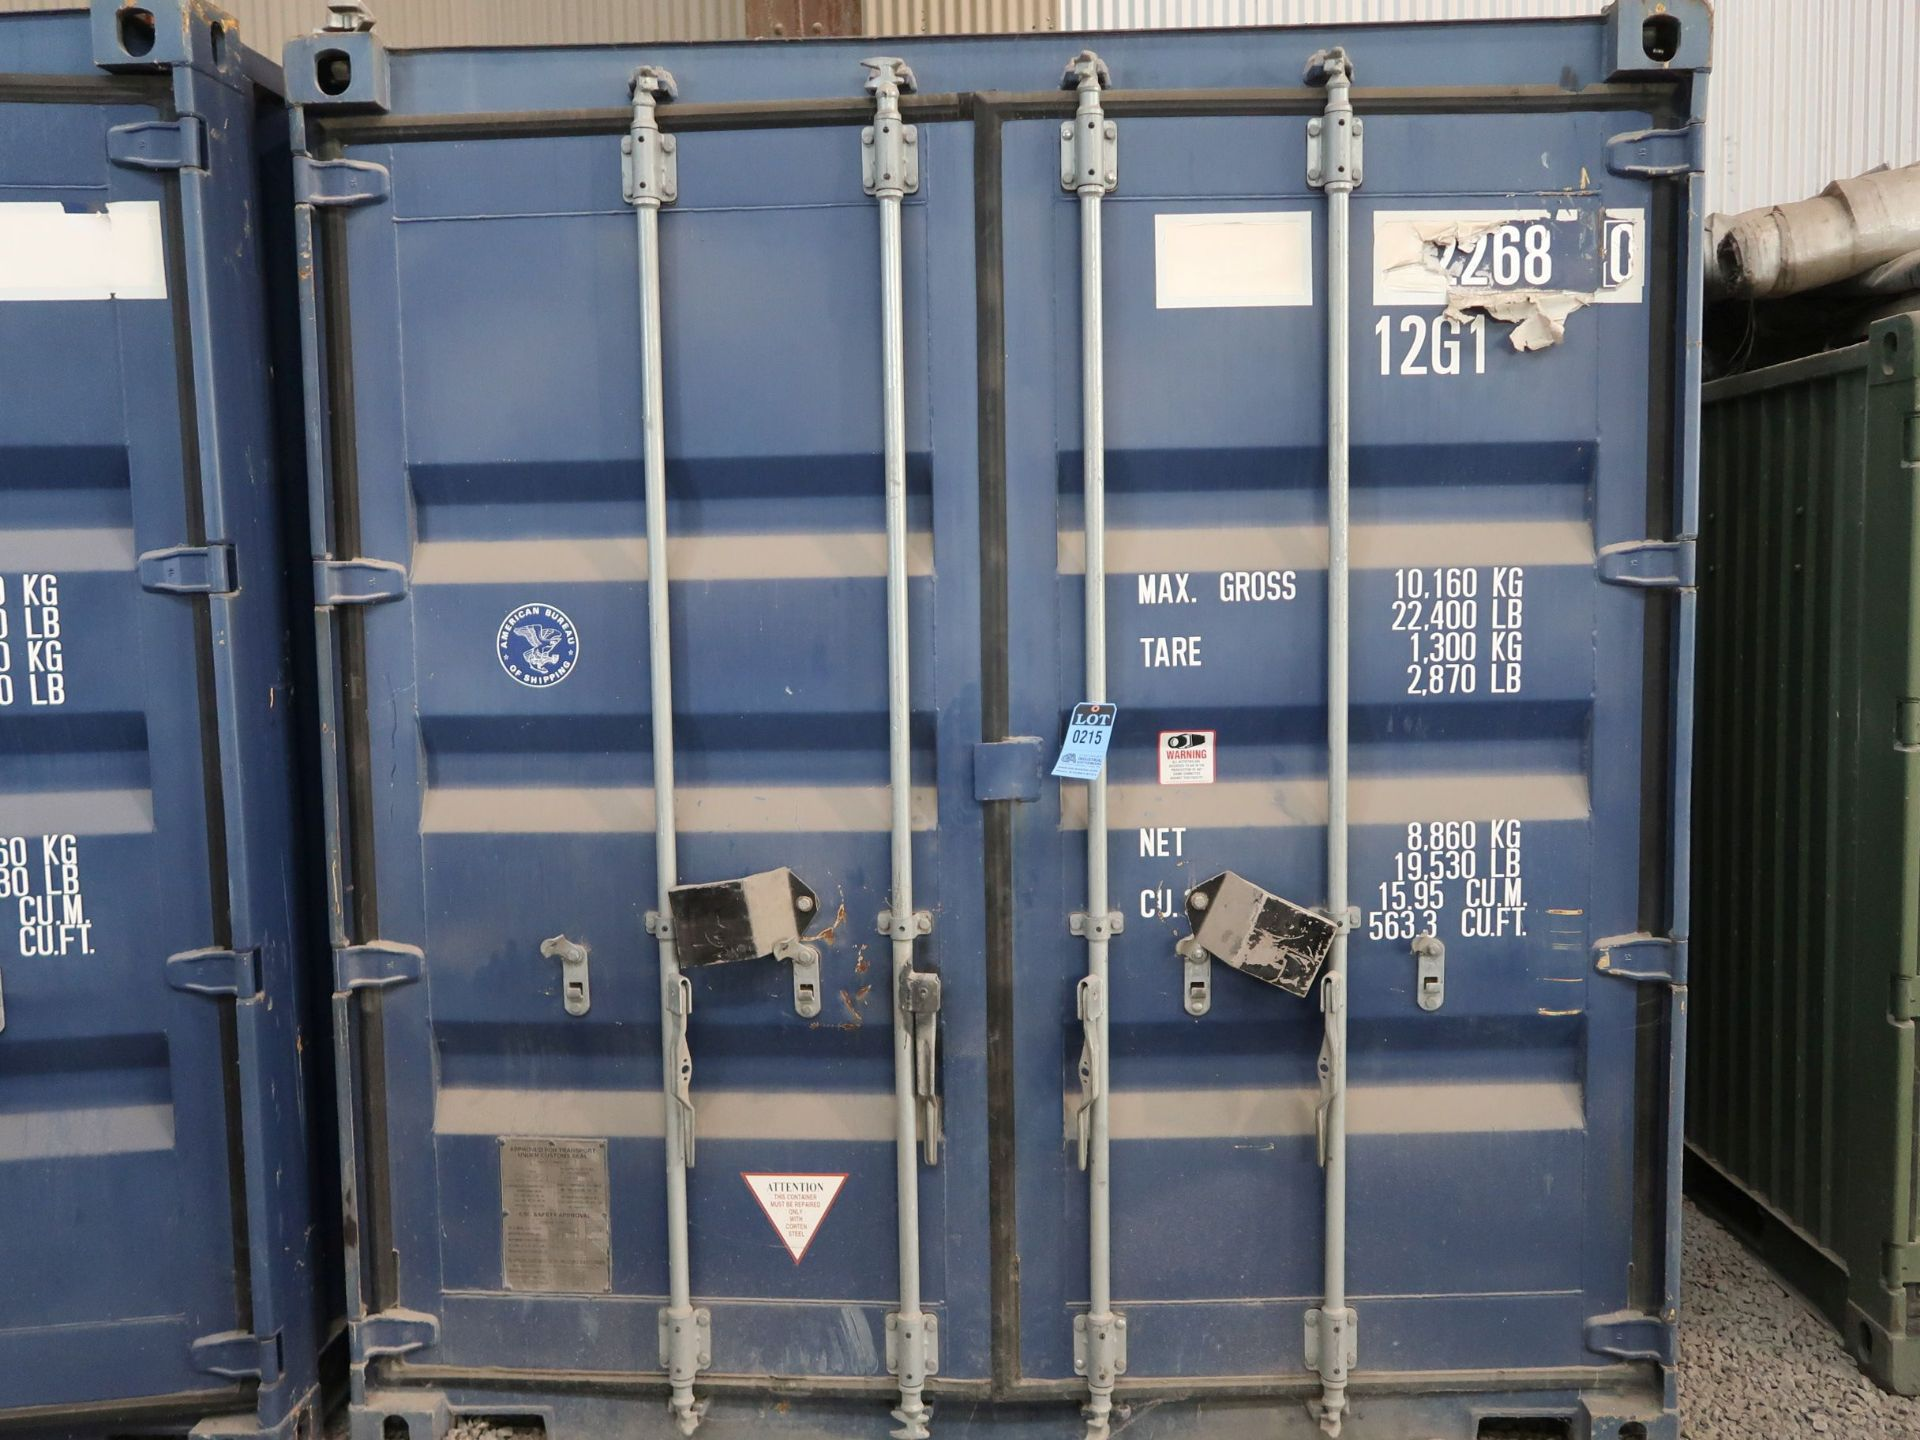 "Lot 215 - 96"" X 118"" X 102"" X 563 CU. FT. CONEX STORAGE CONTAINER WITH STANDARD DOOR"